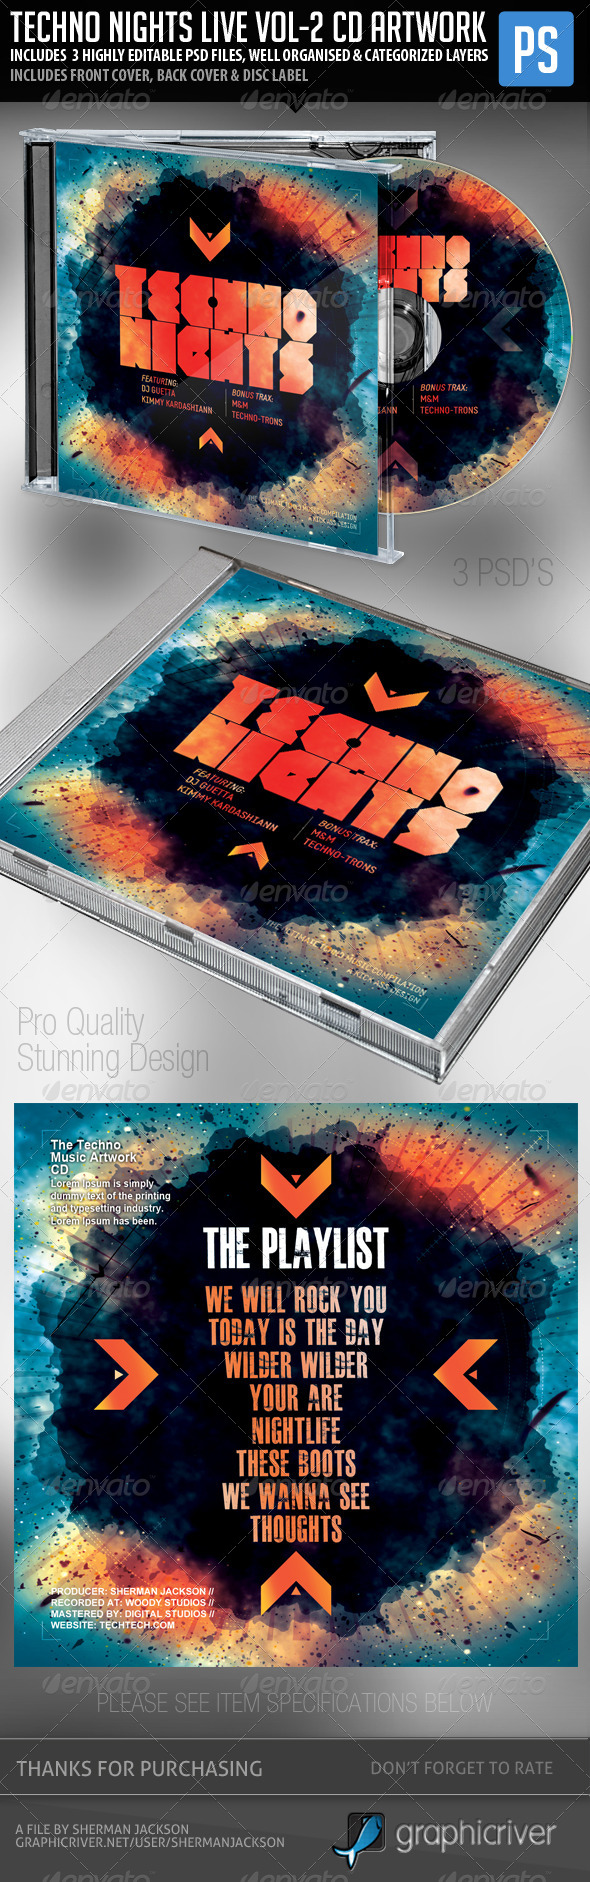 GraphicRiver Techno Nights Live Vol.2 CD Album Artwork 7229432